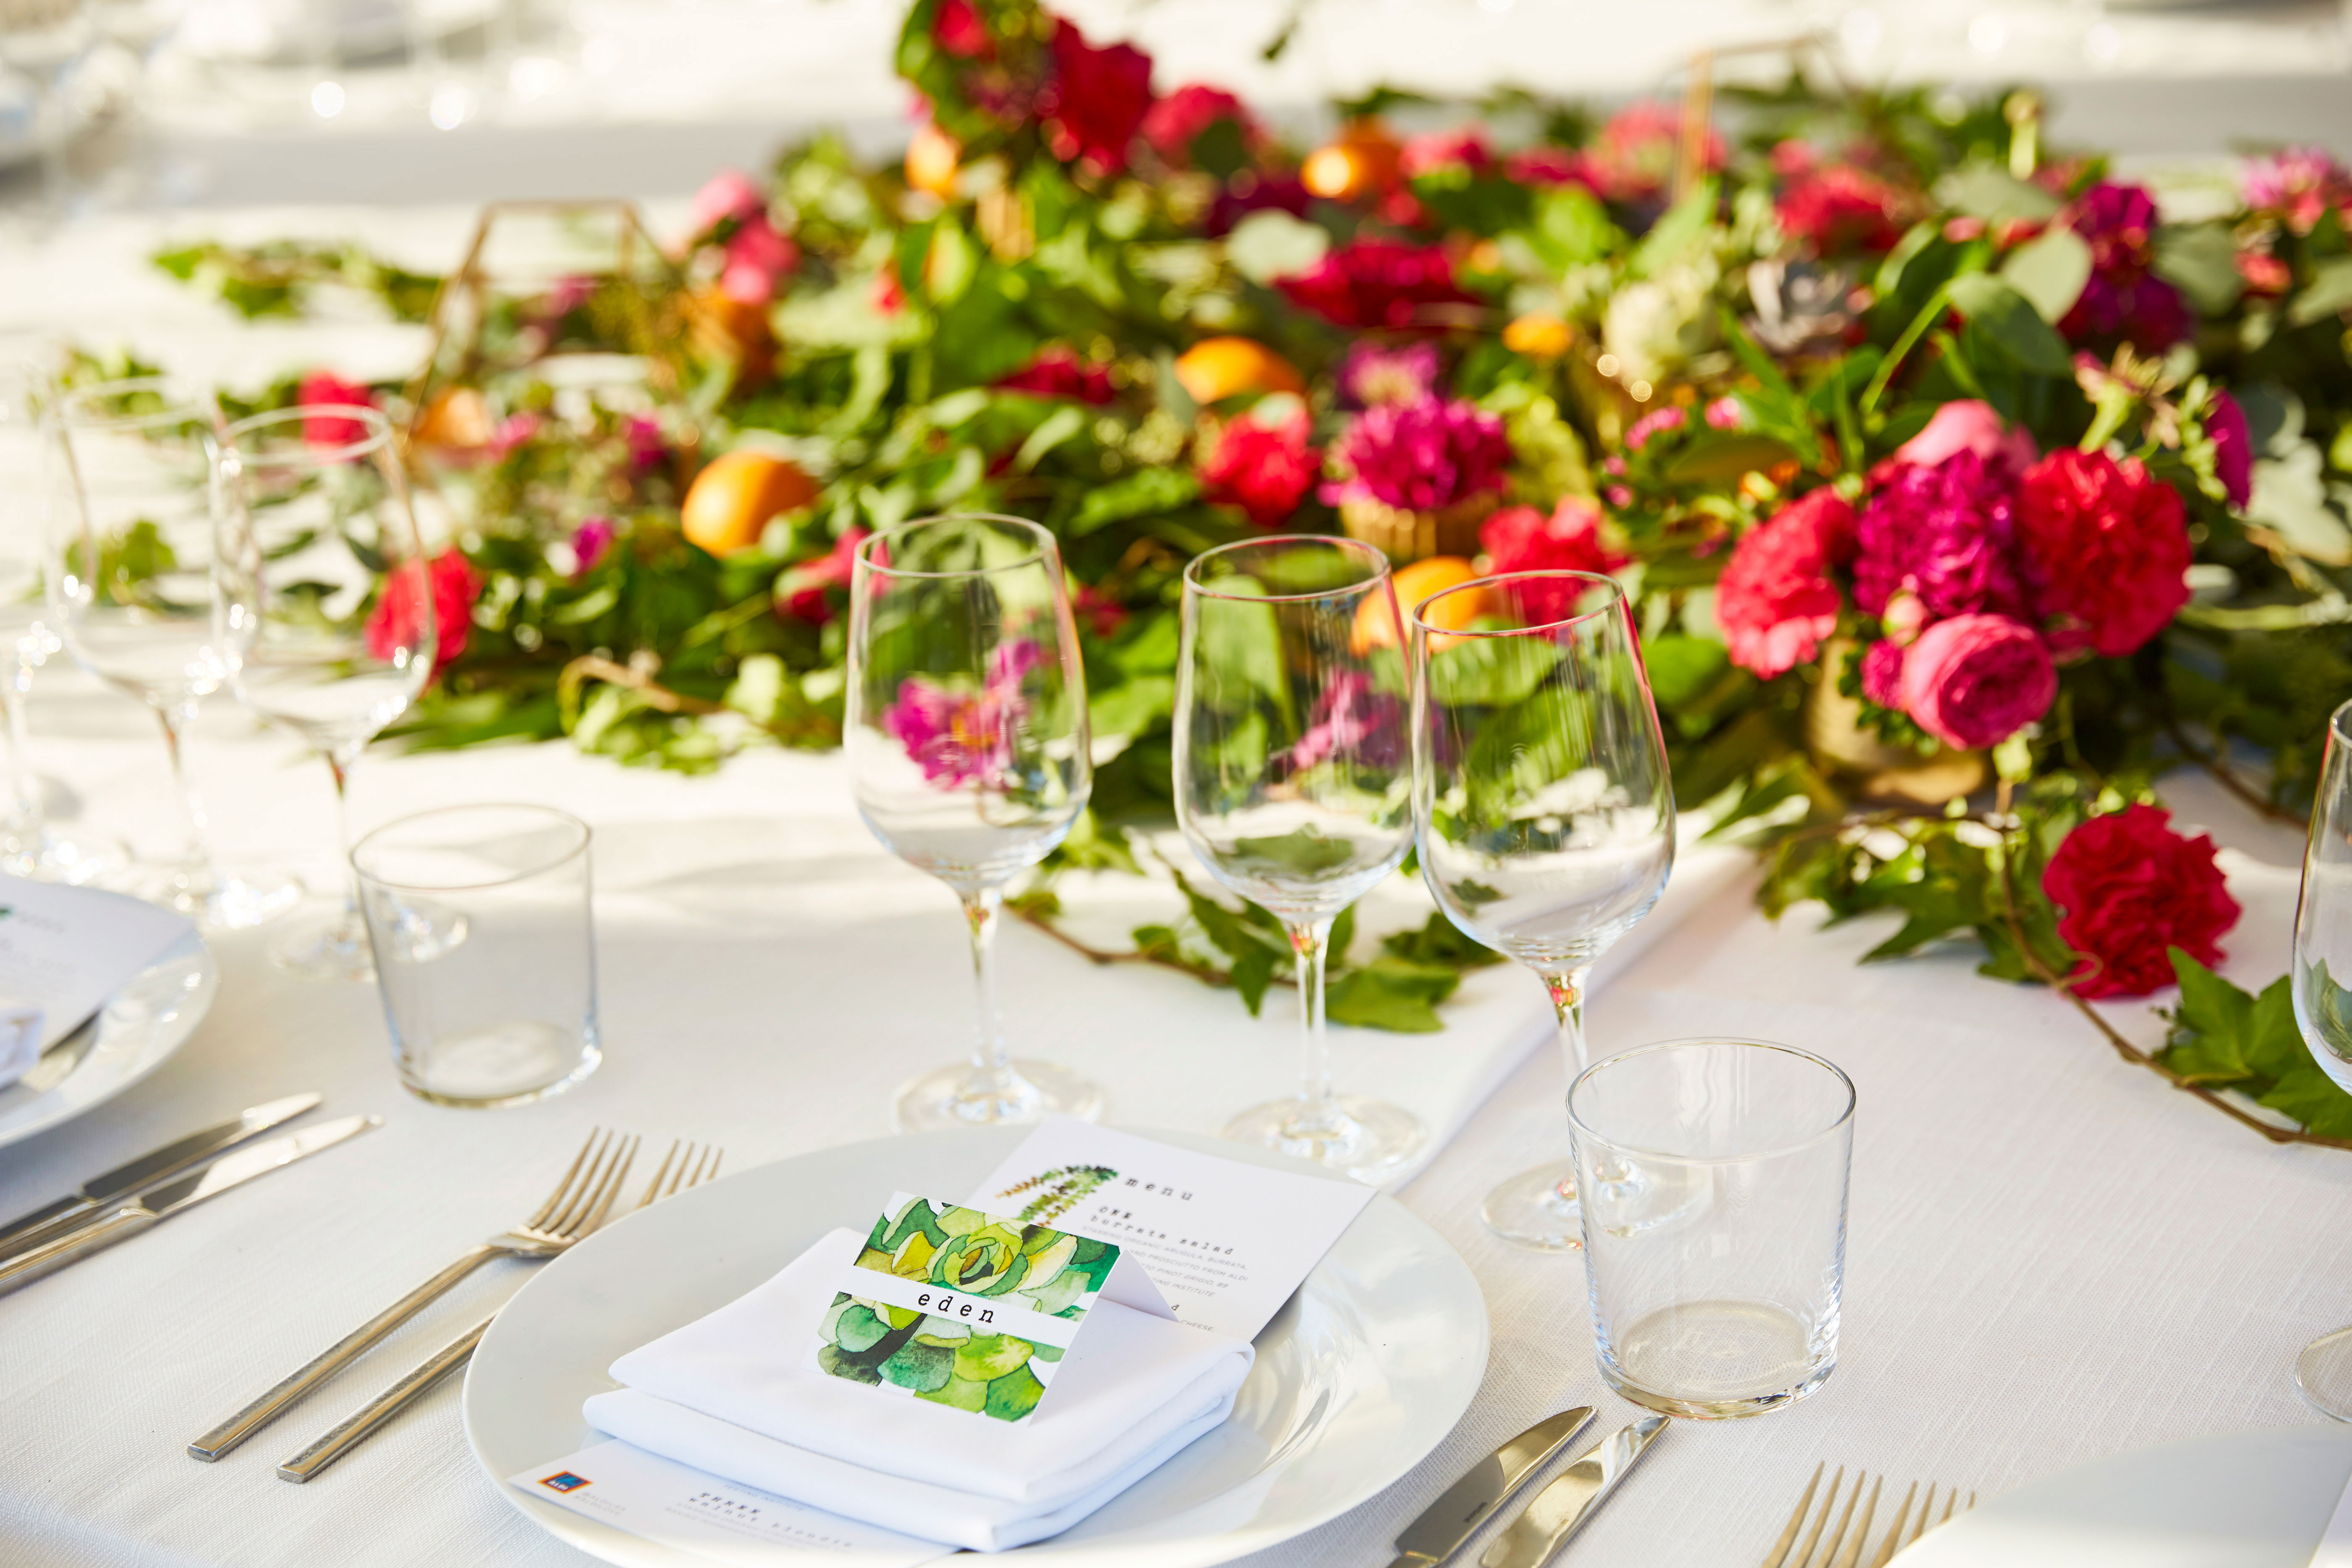 A beautiful place setting with a fresh flower centerpiece.